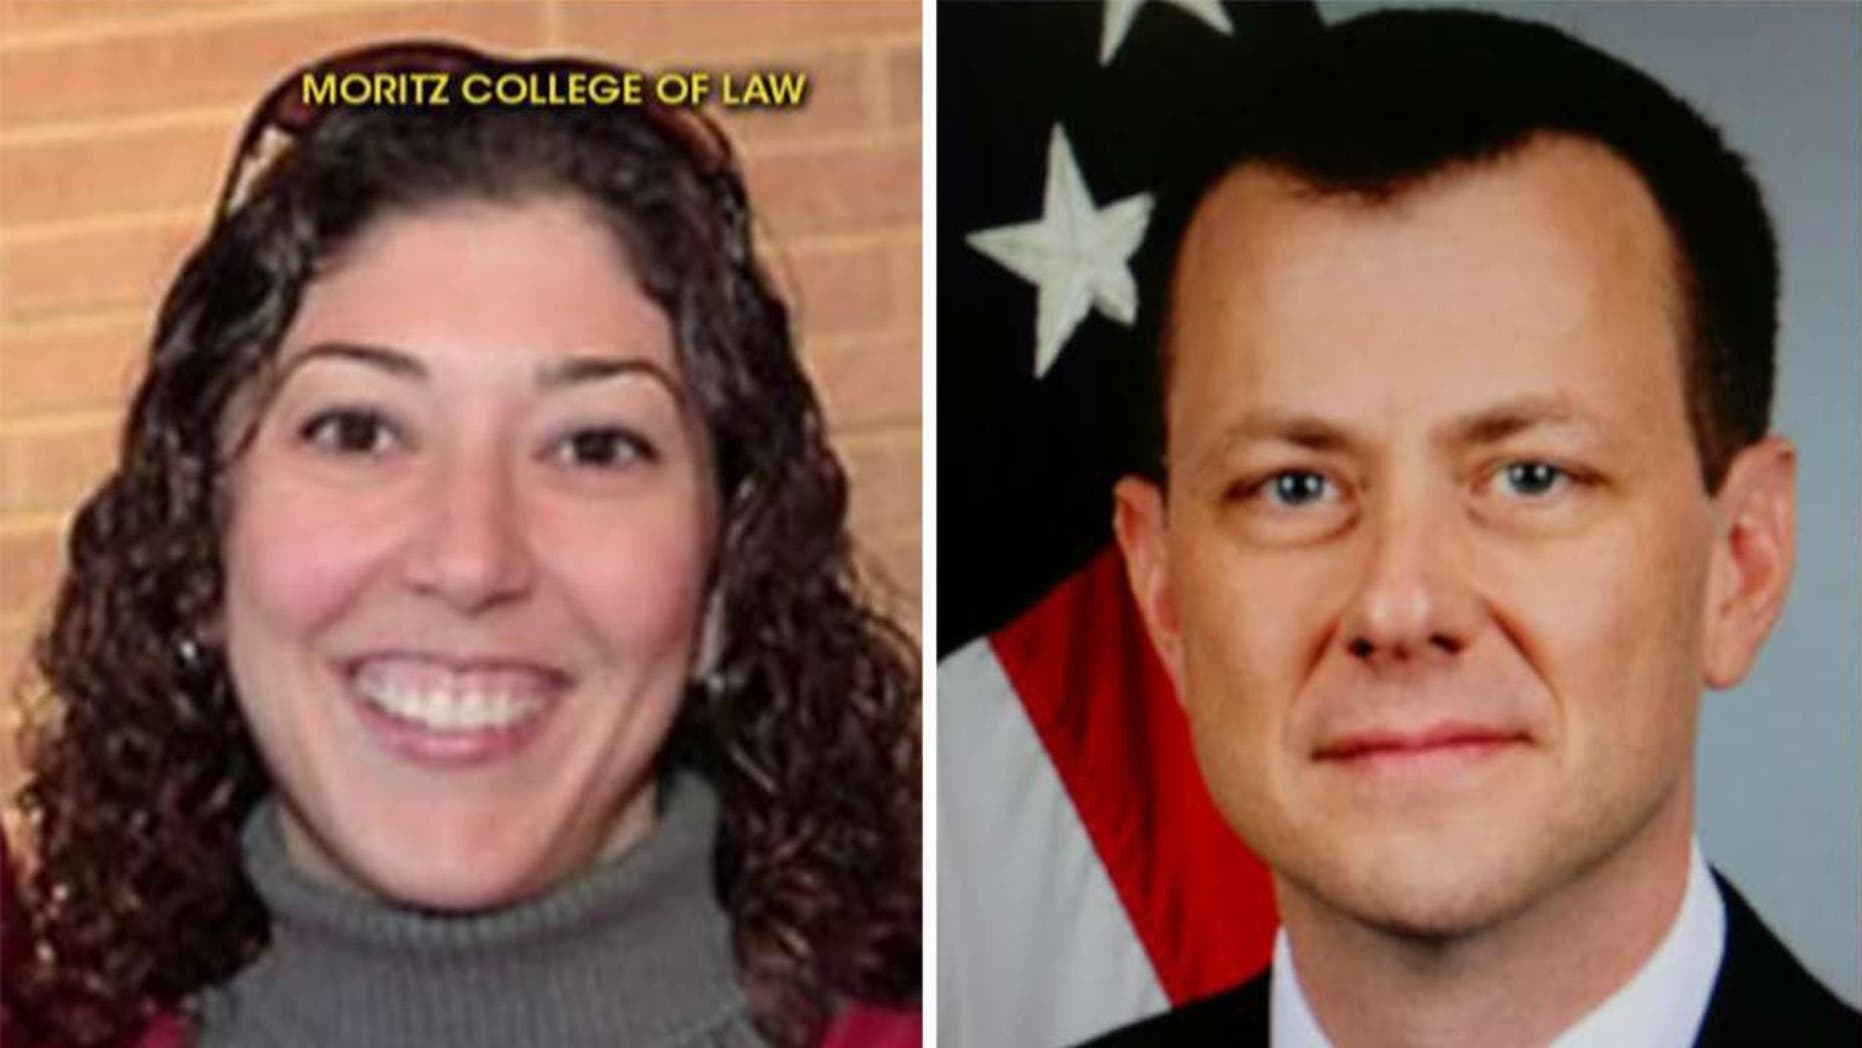 Viewers who rely on ABC, CBS and NBC for their news might be unaware of the drama surrounding Lisa Page and Peter Strzok